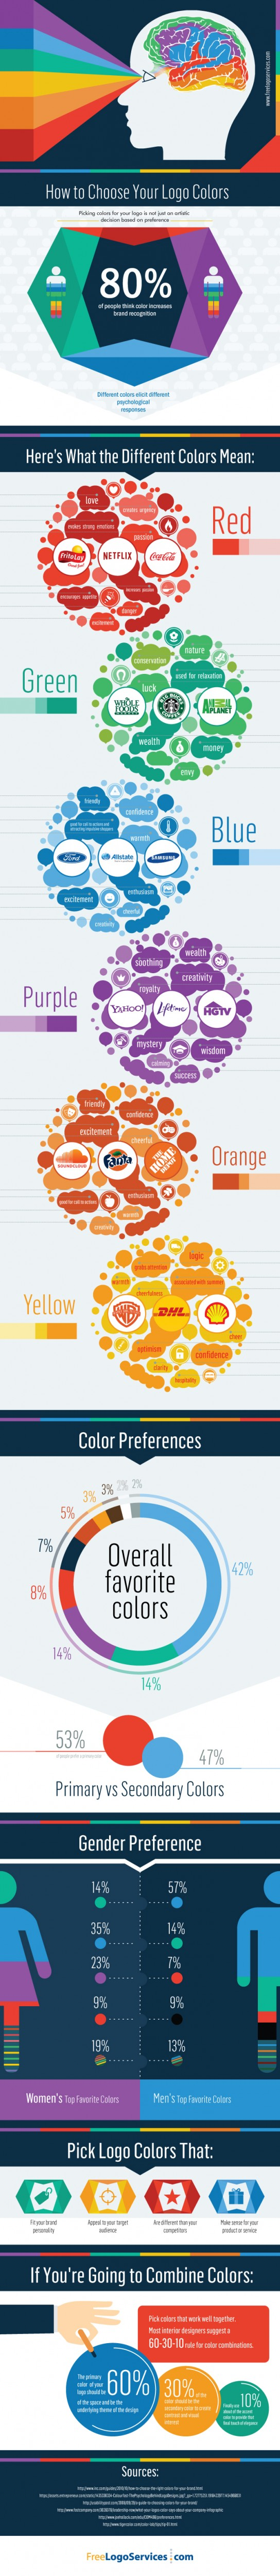 How to Choose Your Logo Colors